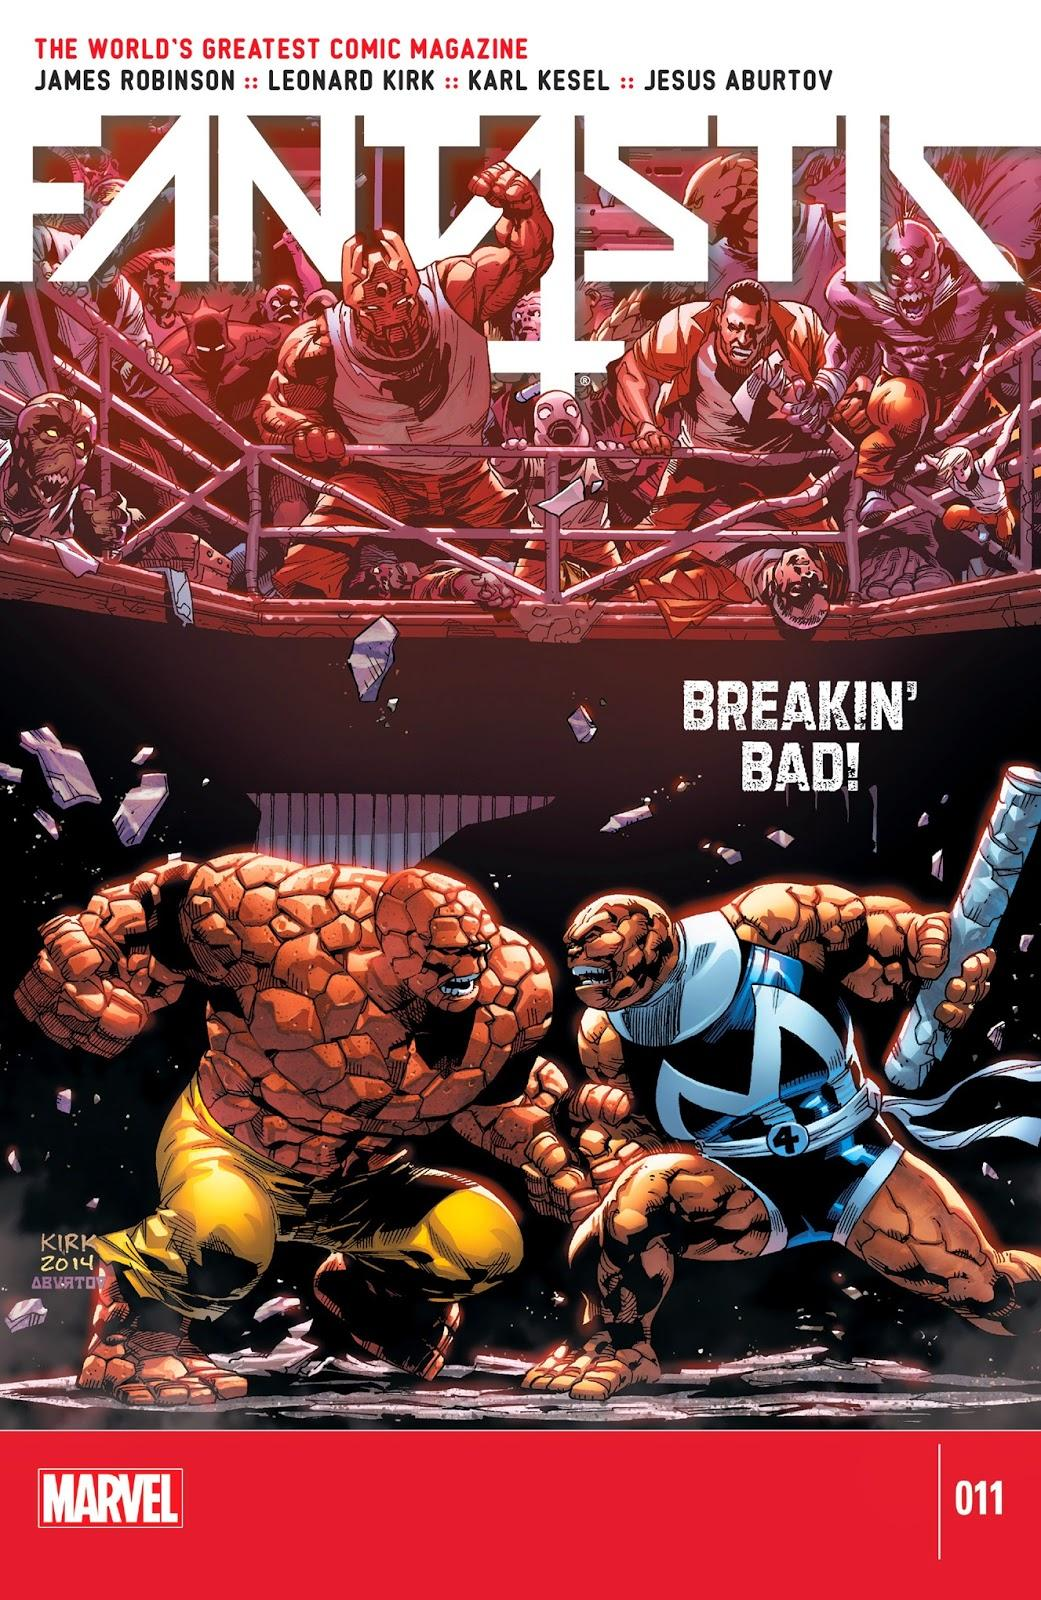 Fantastic Four Vol. 5 #11